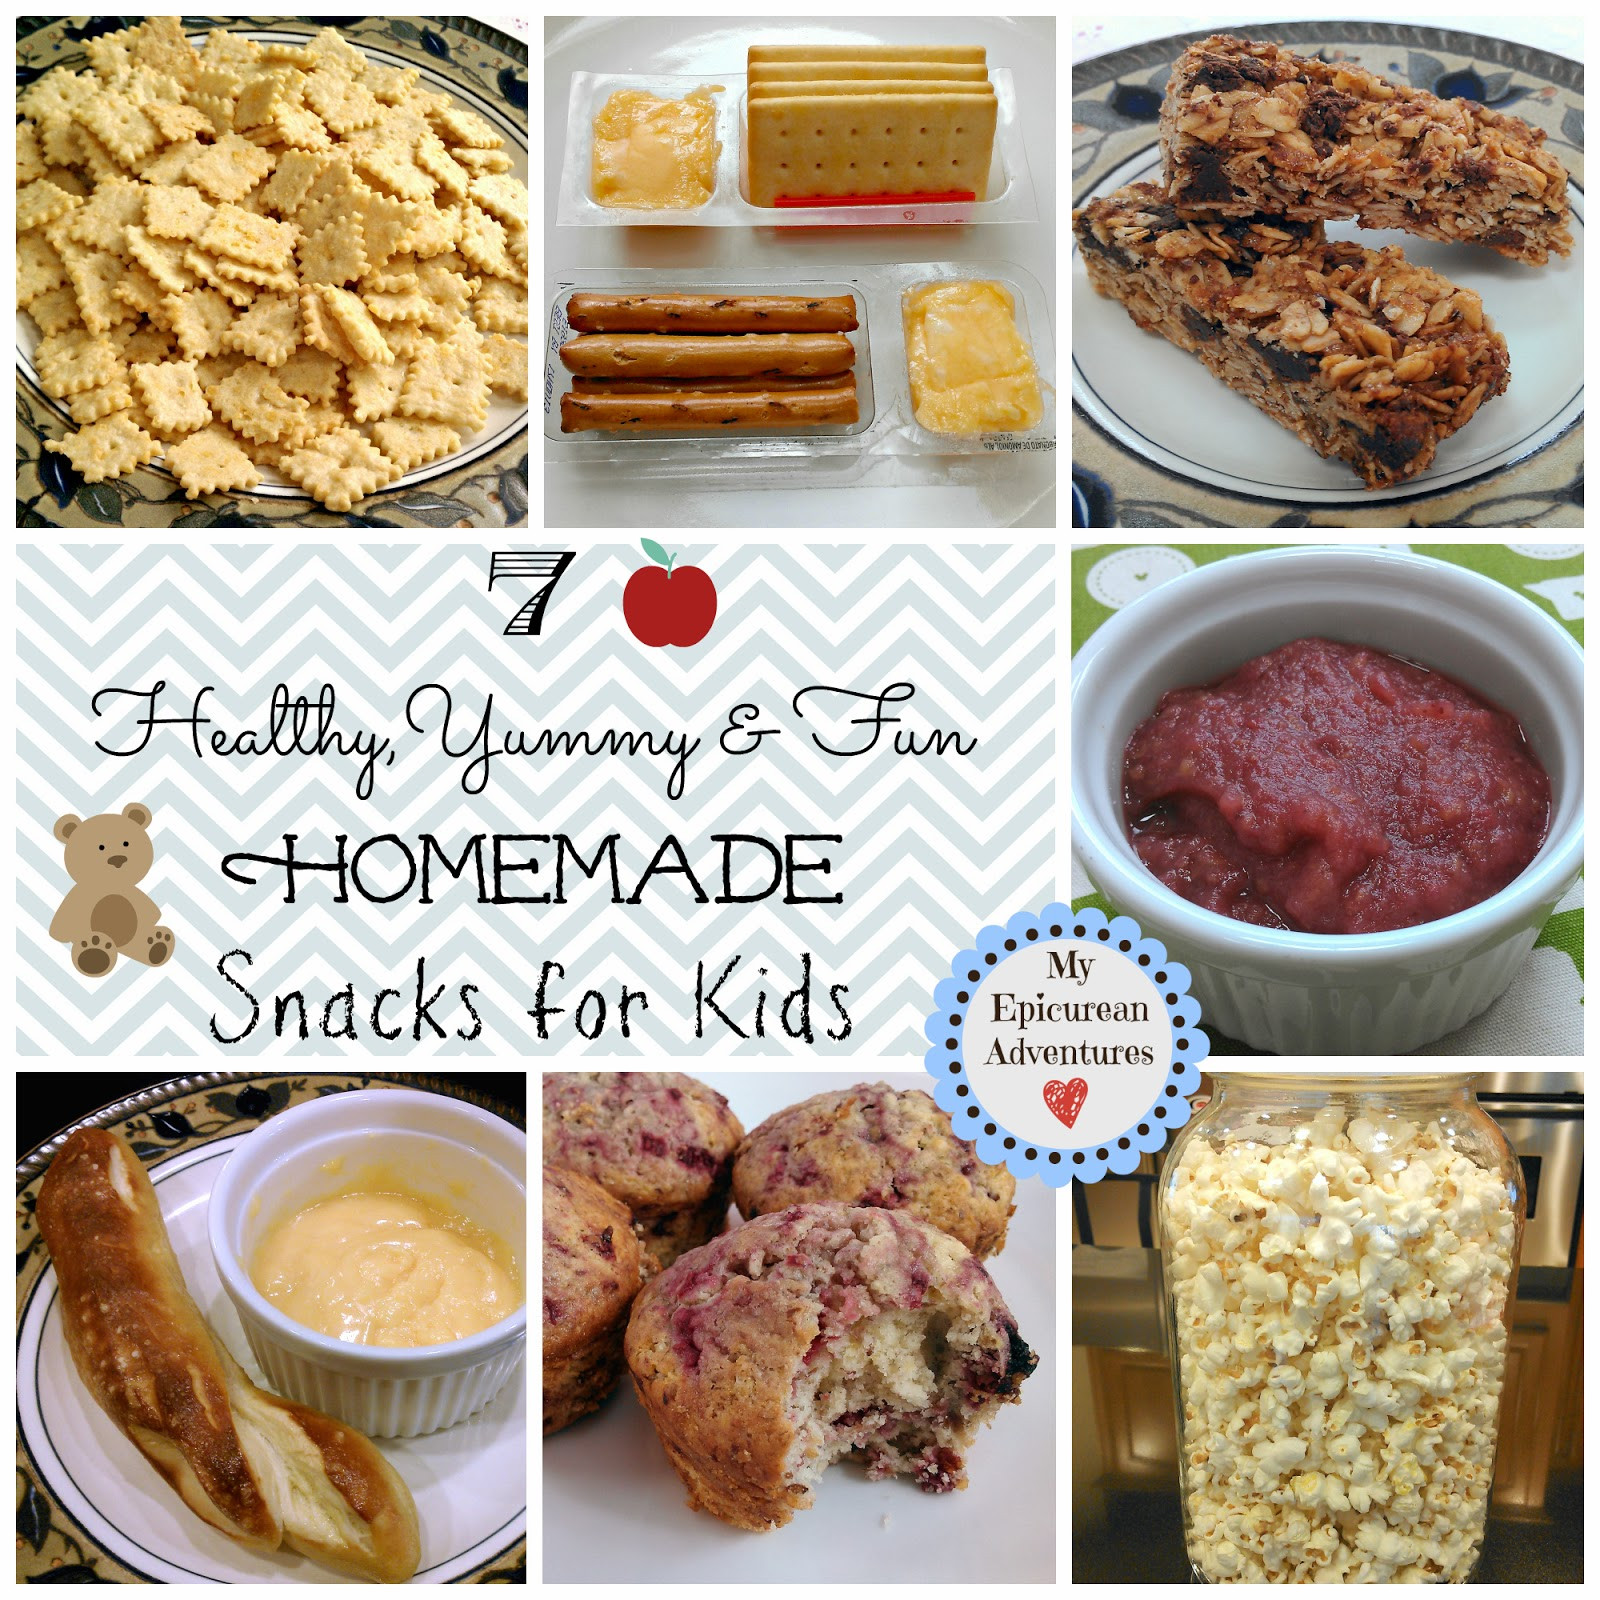 Healthy But Yummy Snacks  7 Healthy Yummy and Fun Homemade Snacks for Kids My